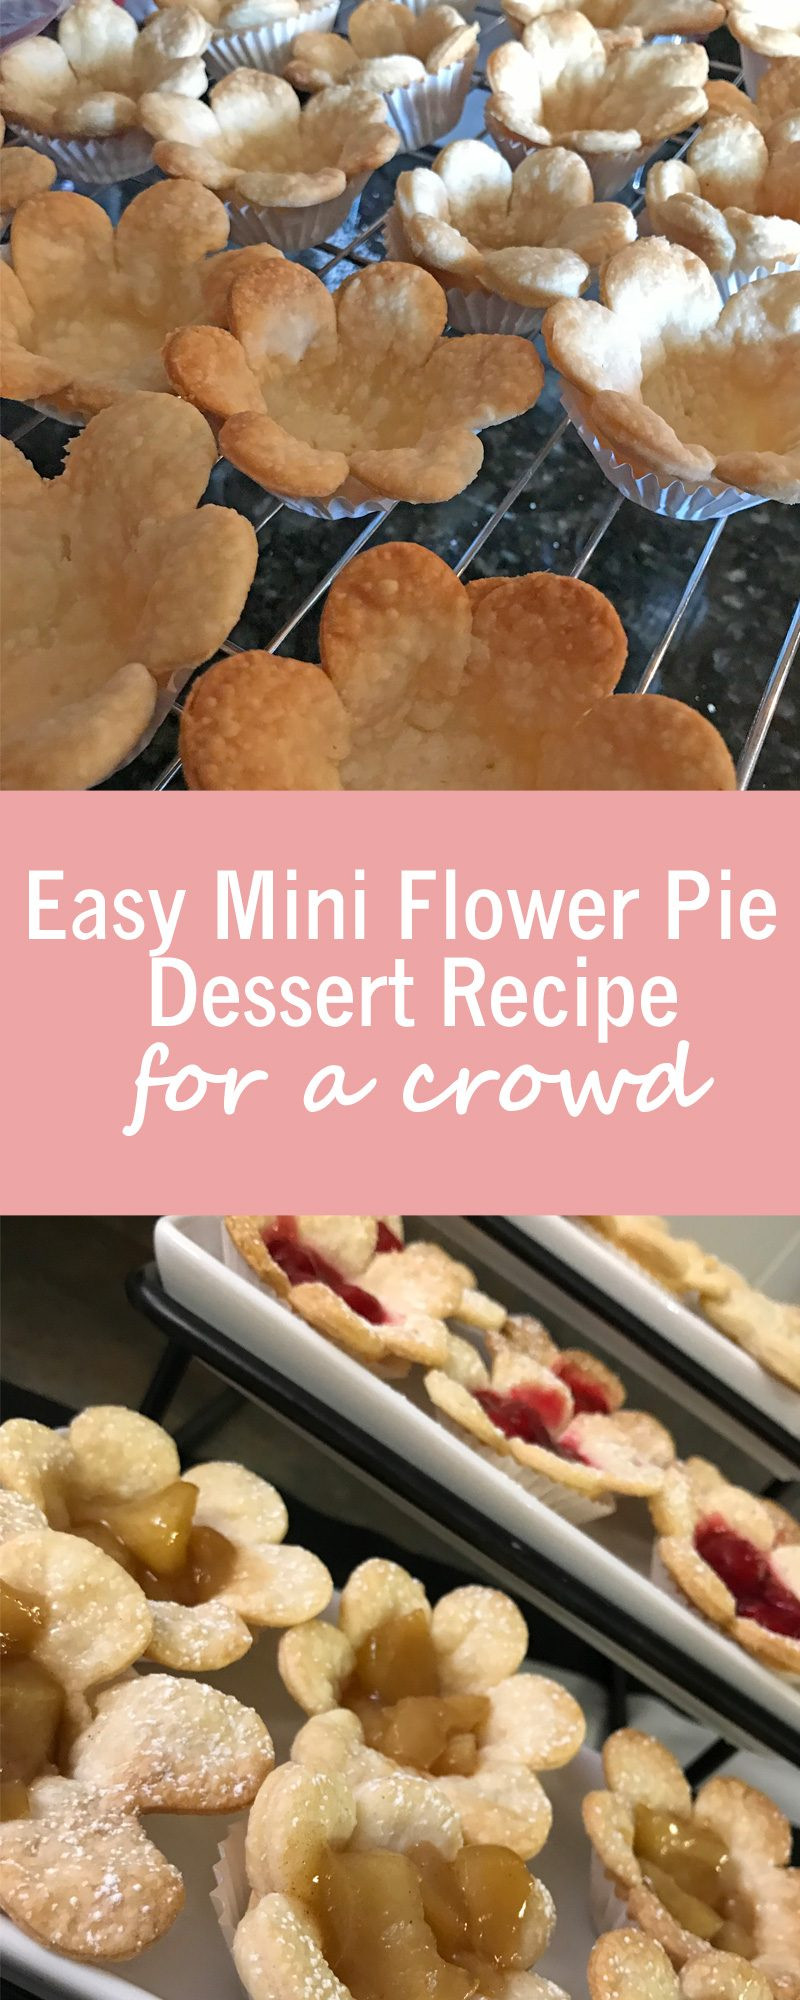 Easy Fall Desserts For A Crowd  Easy Mini Flower Pie Dessert Recipe for a crowd